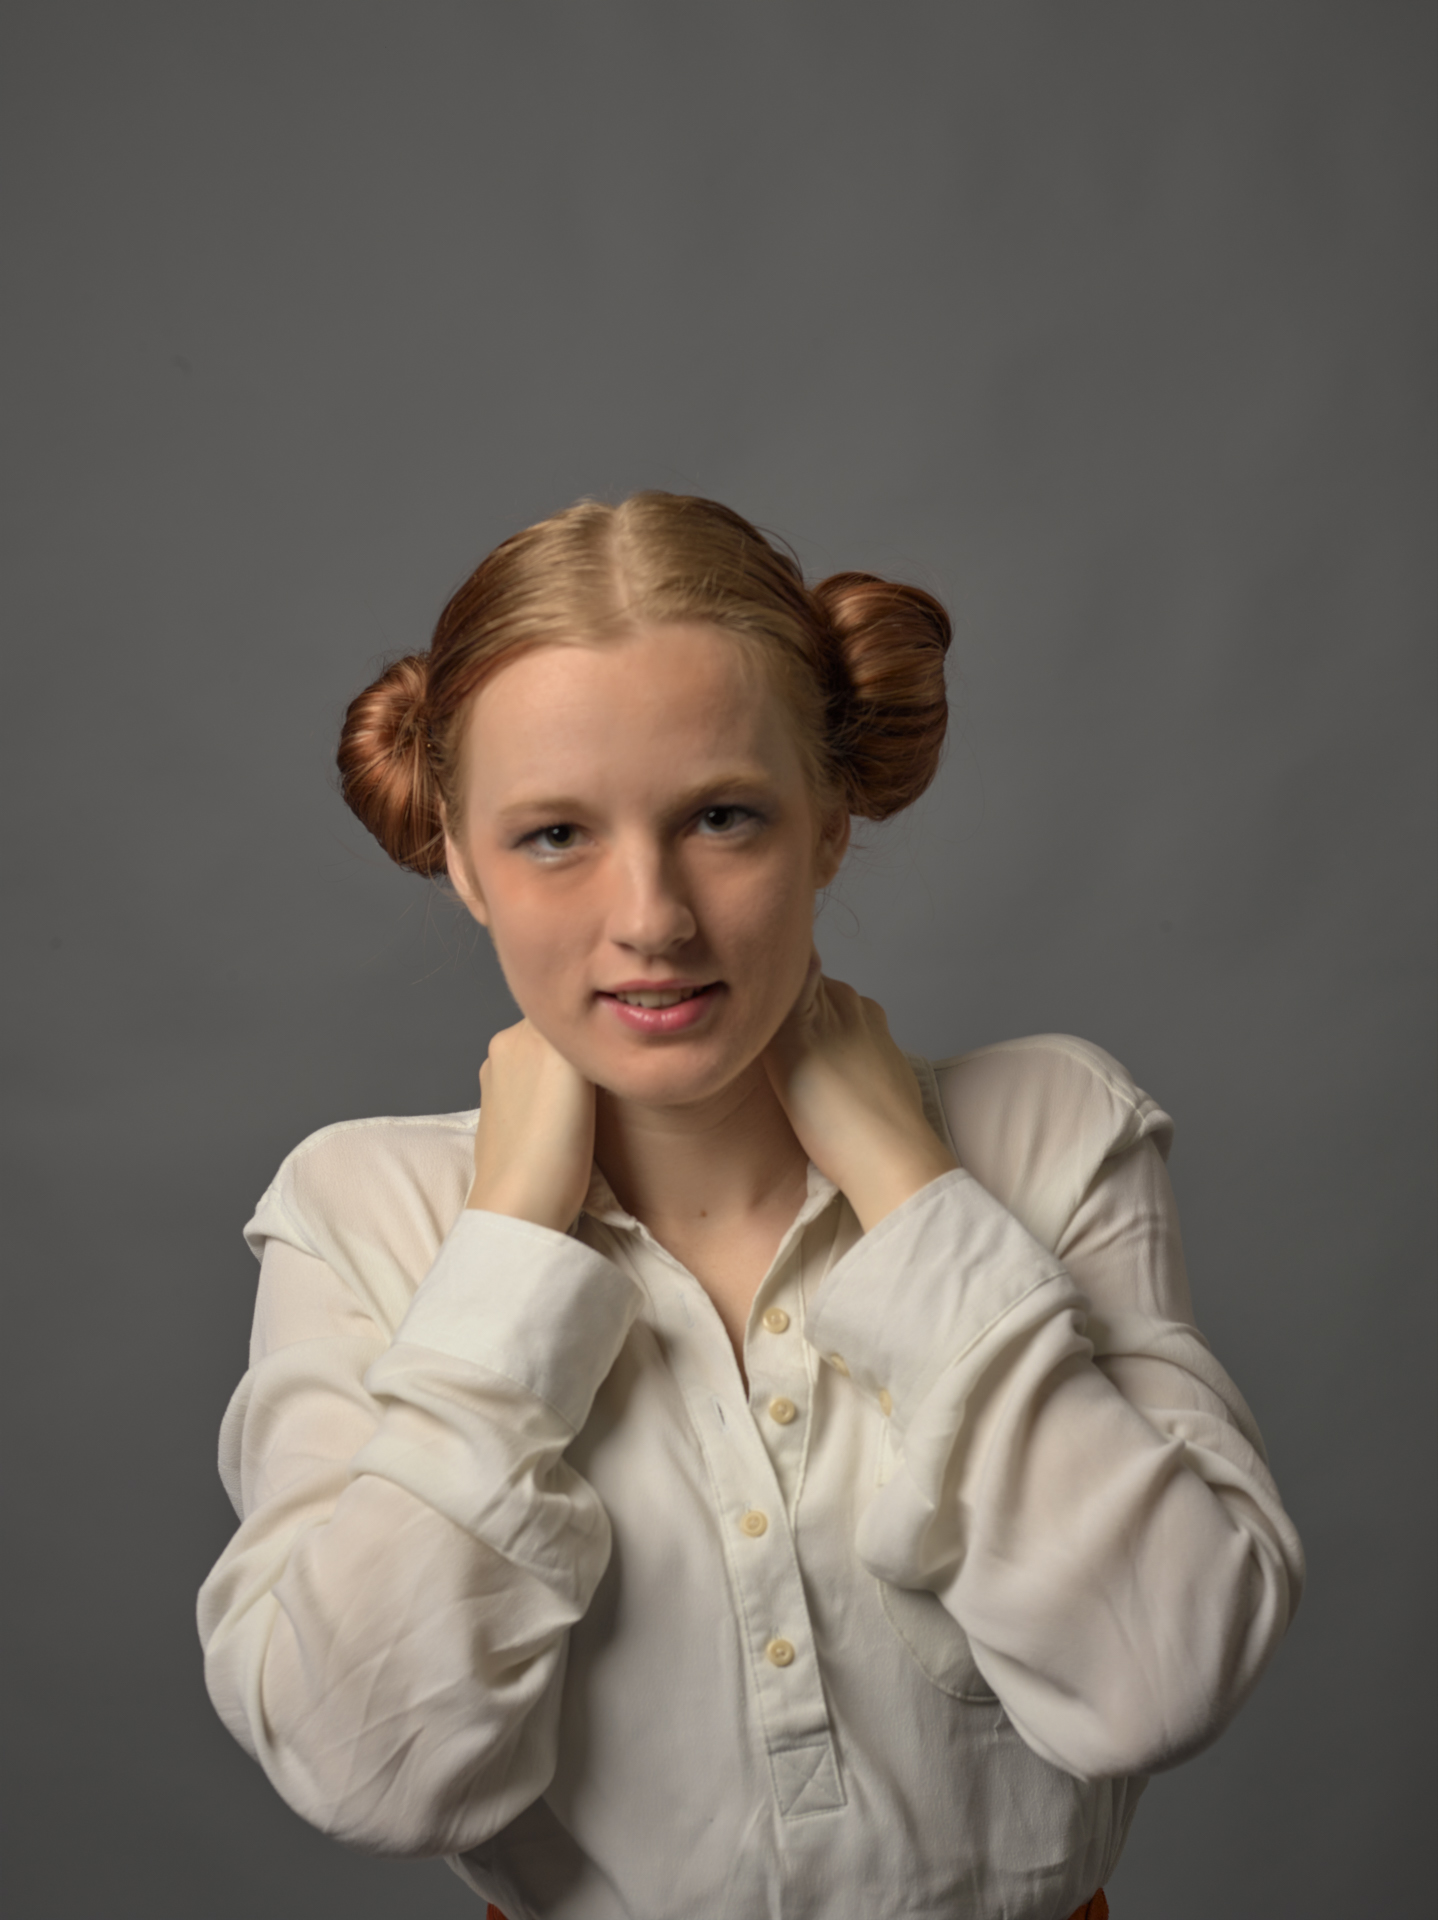 may the 4th be with you star wars photo shoot princess leia